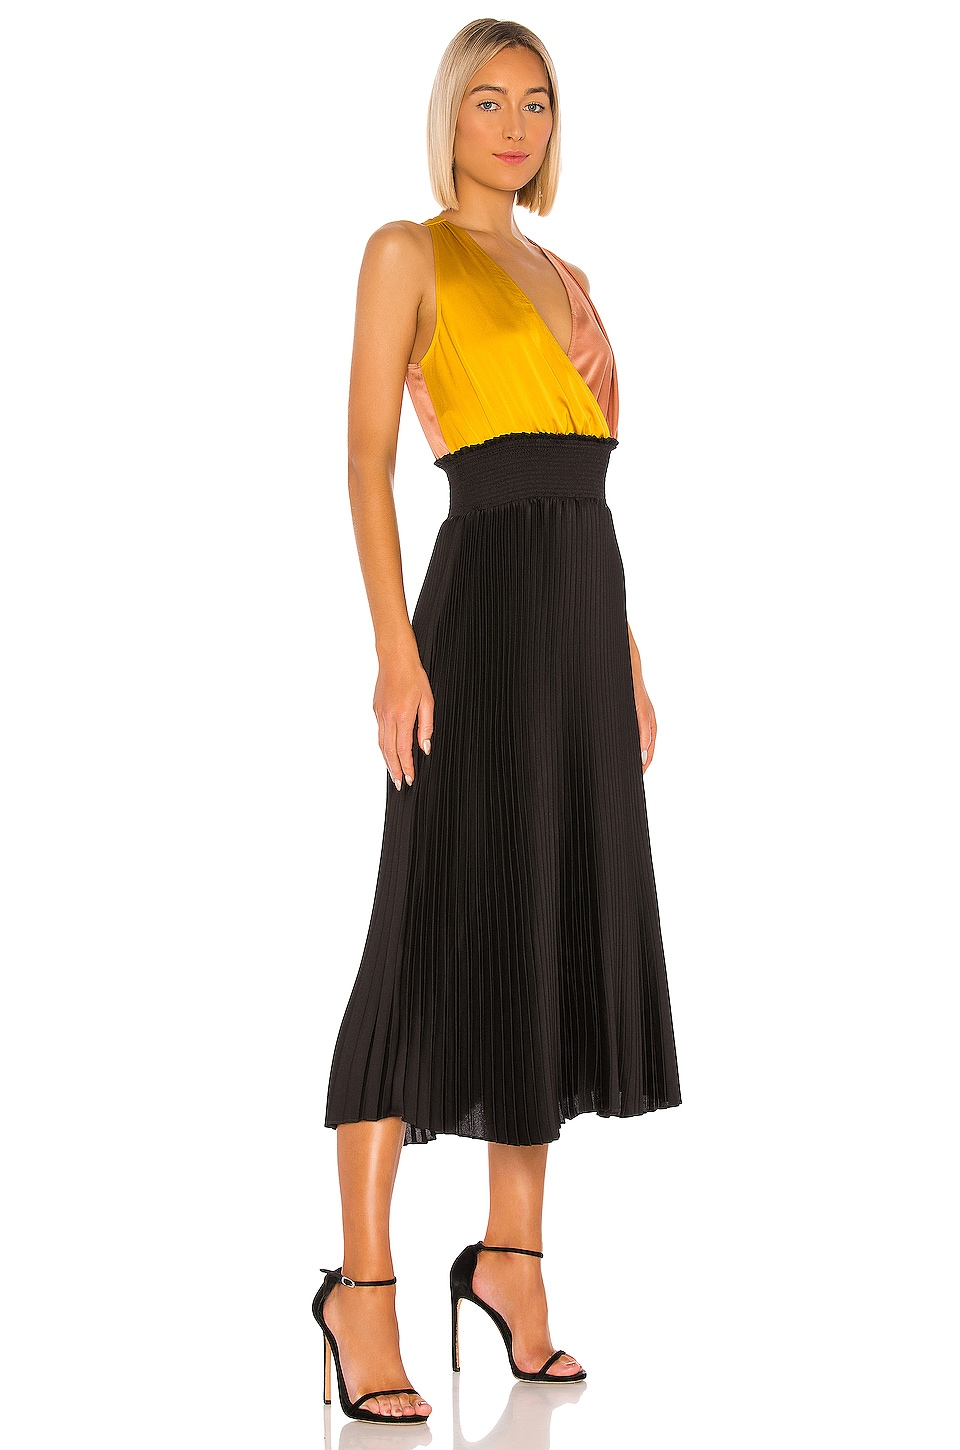 Colorblock Pleated Dress, view 2, click to view large image.